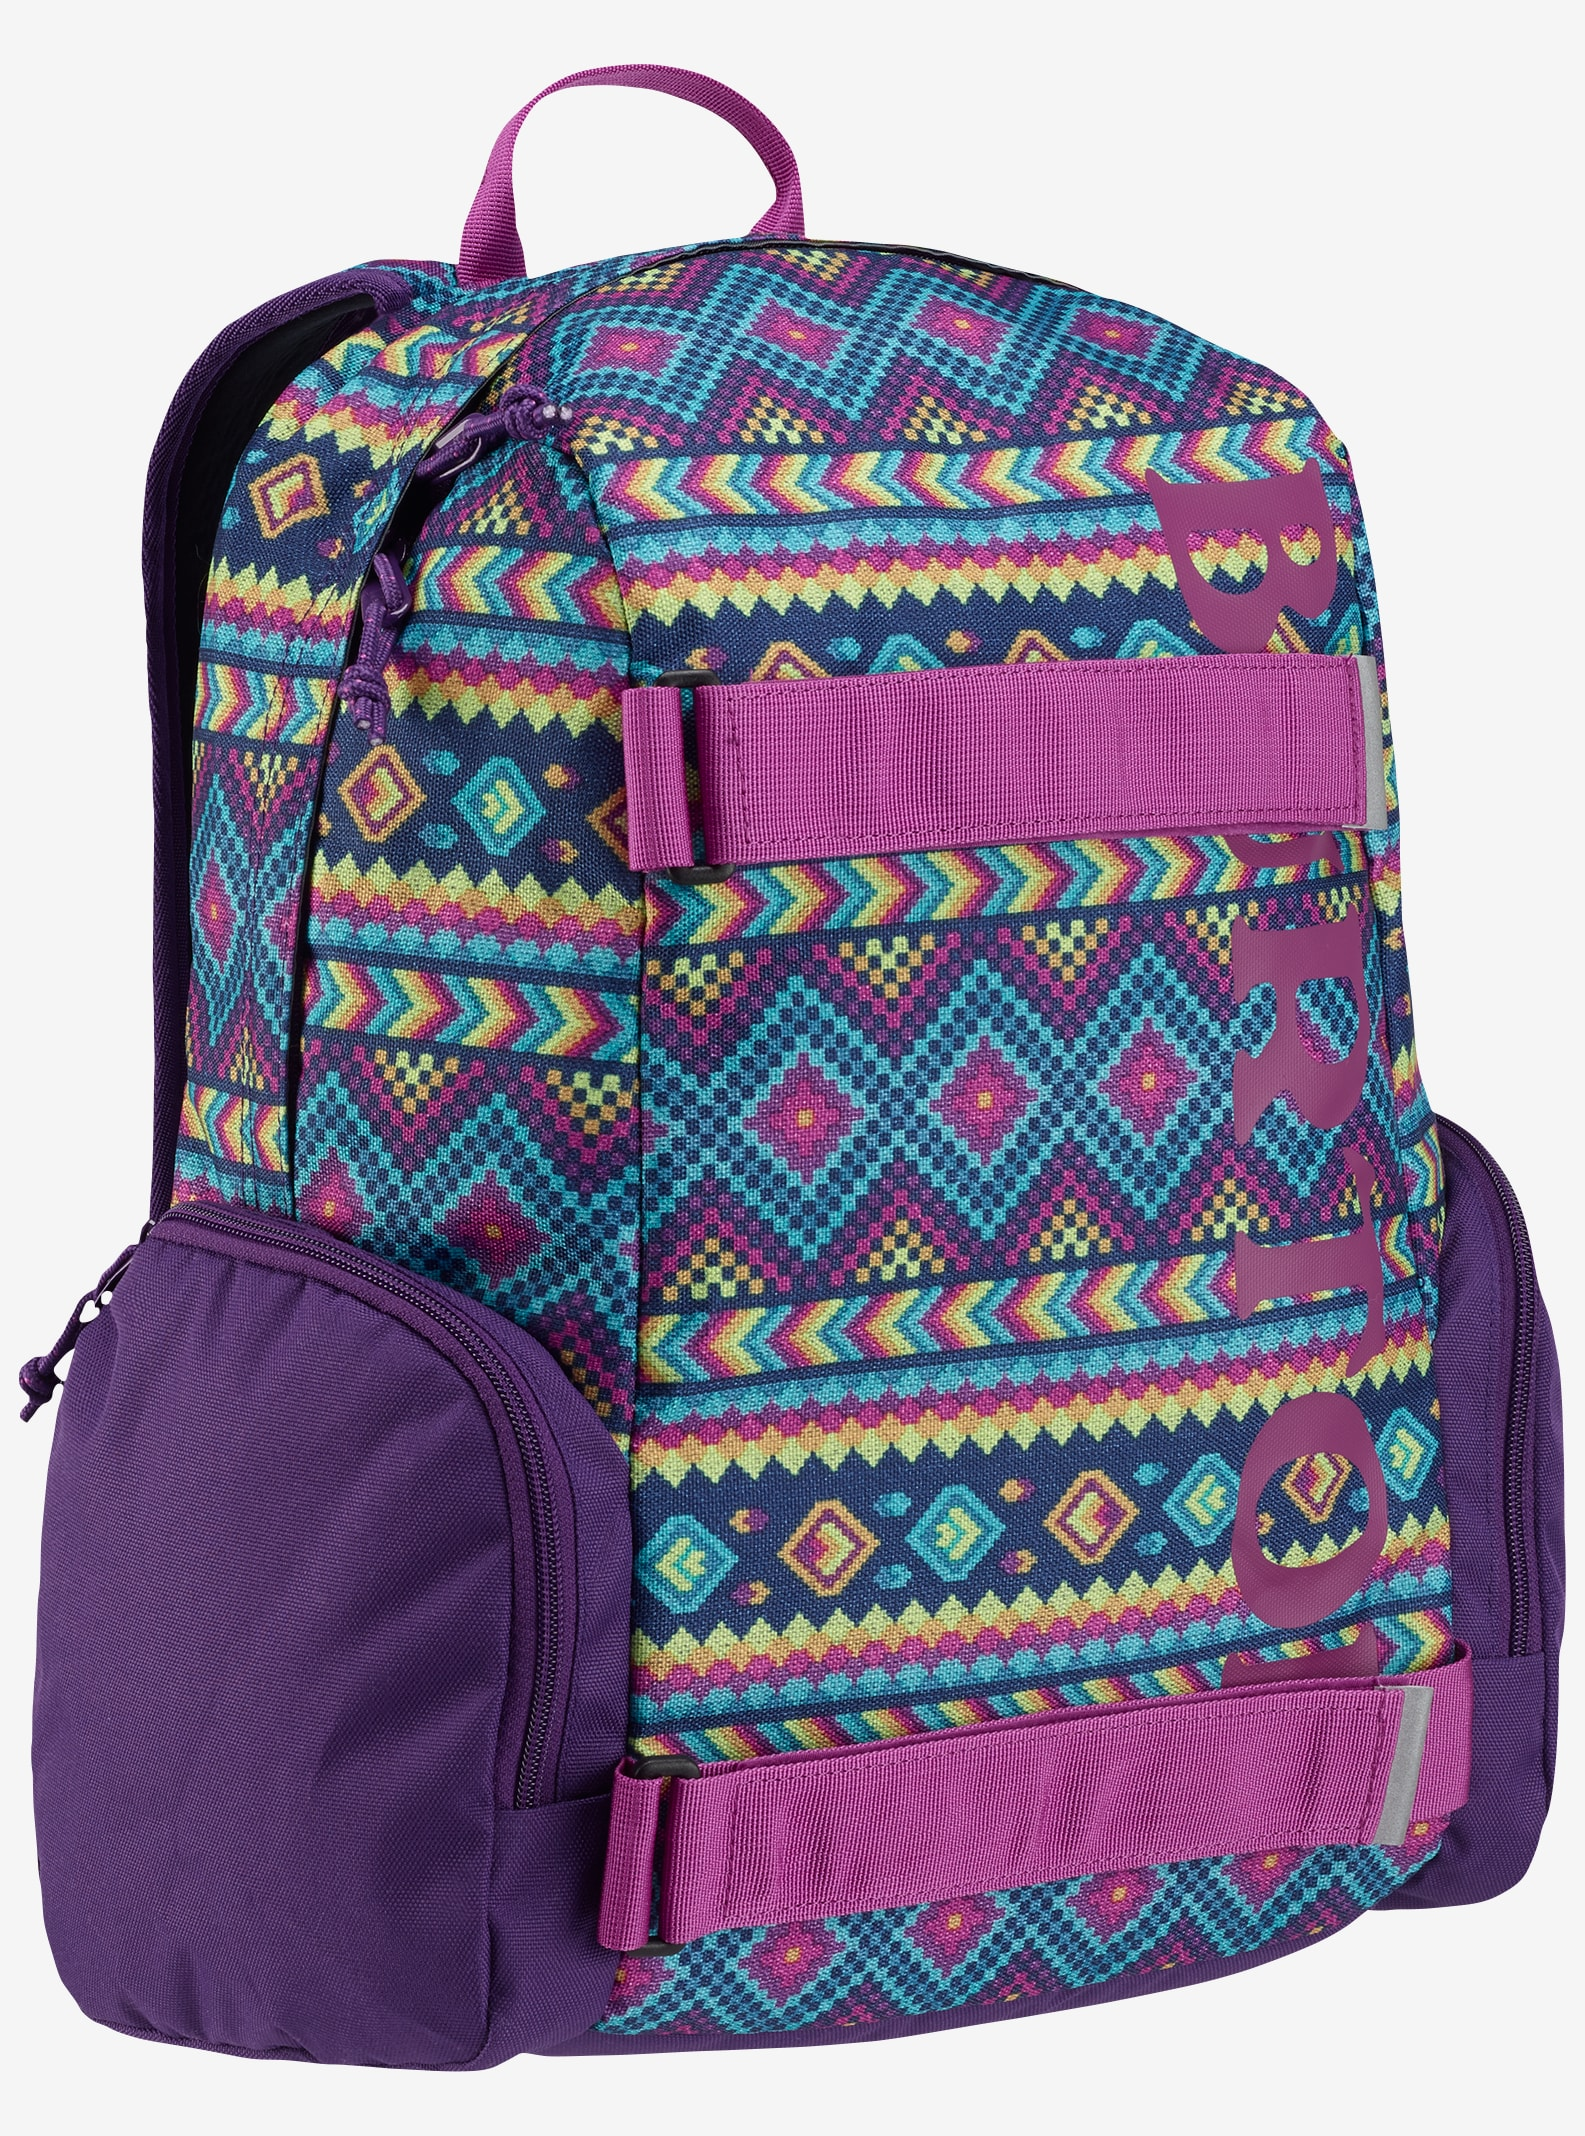 Burton Kids' Emphasis Backpack shown in Bohemia Print